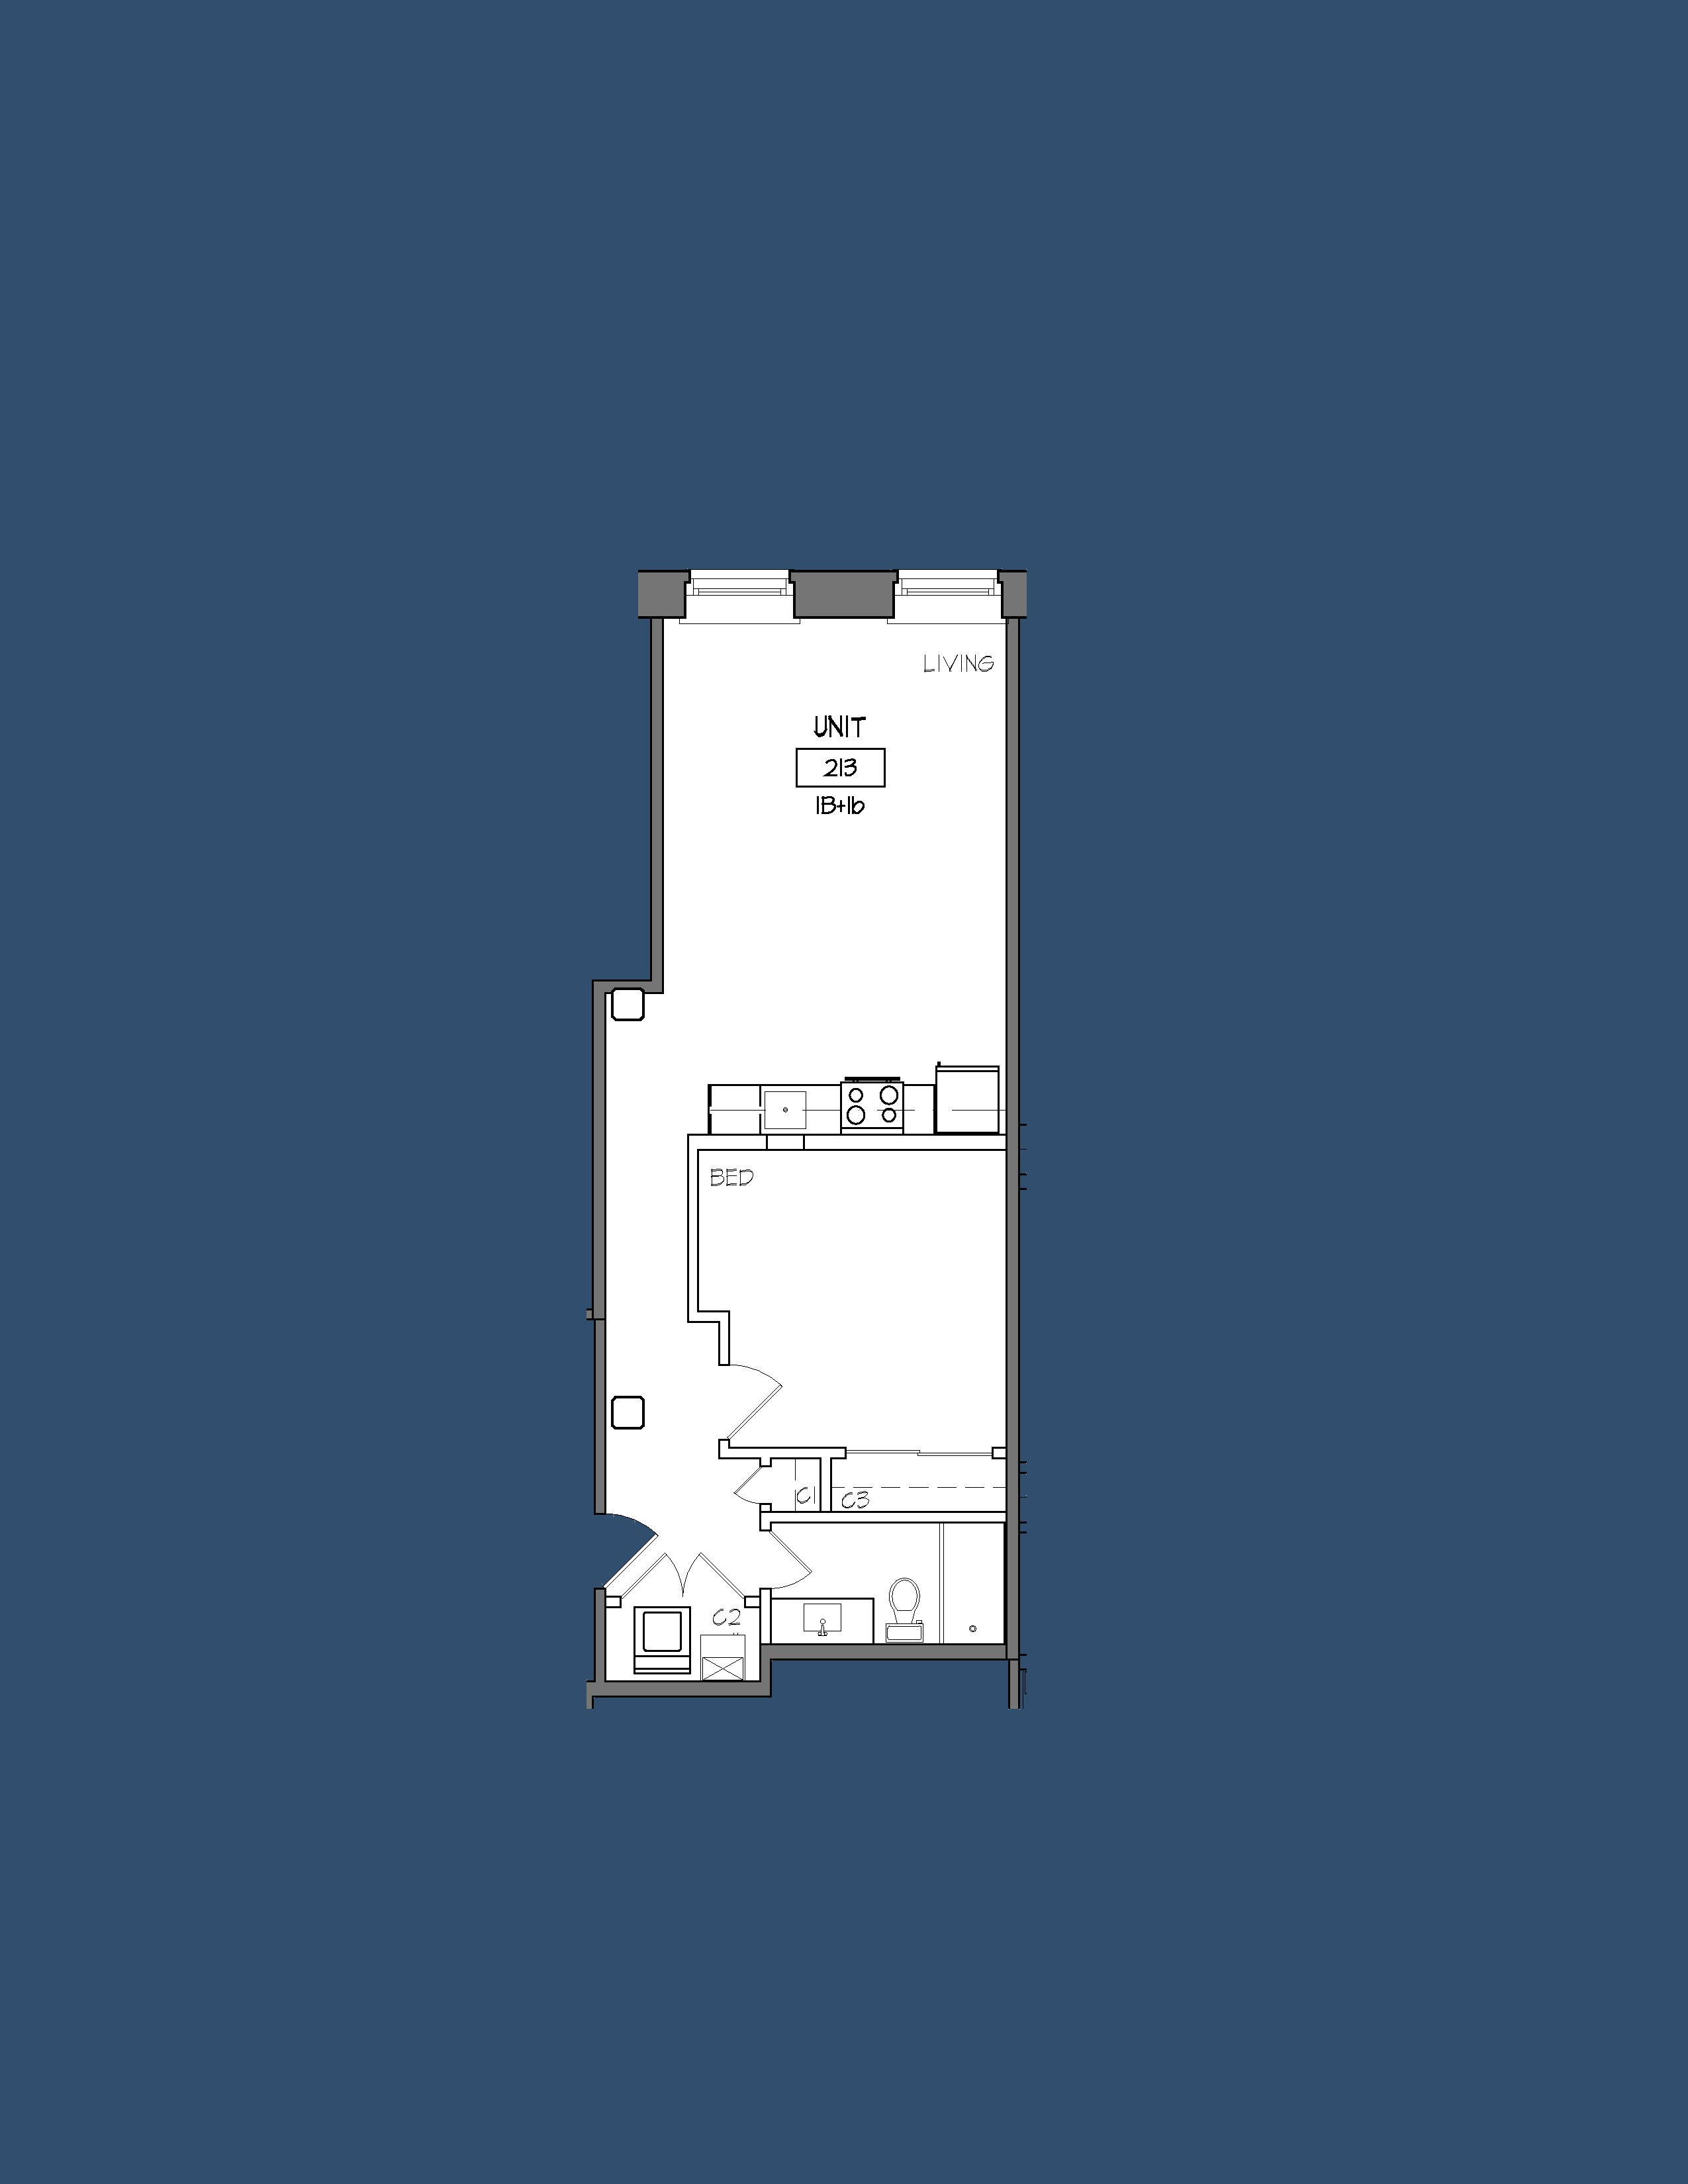 Unit 213 Floor Plan